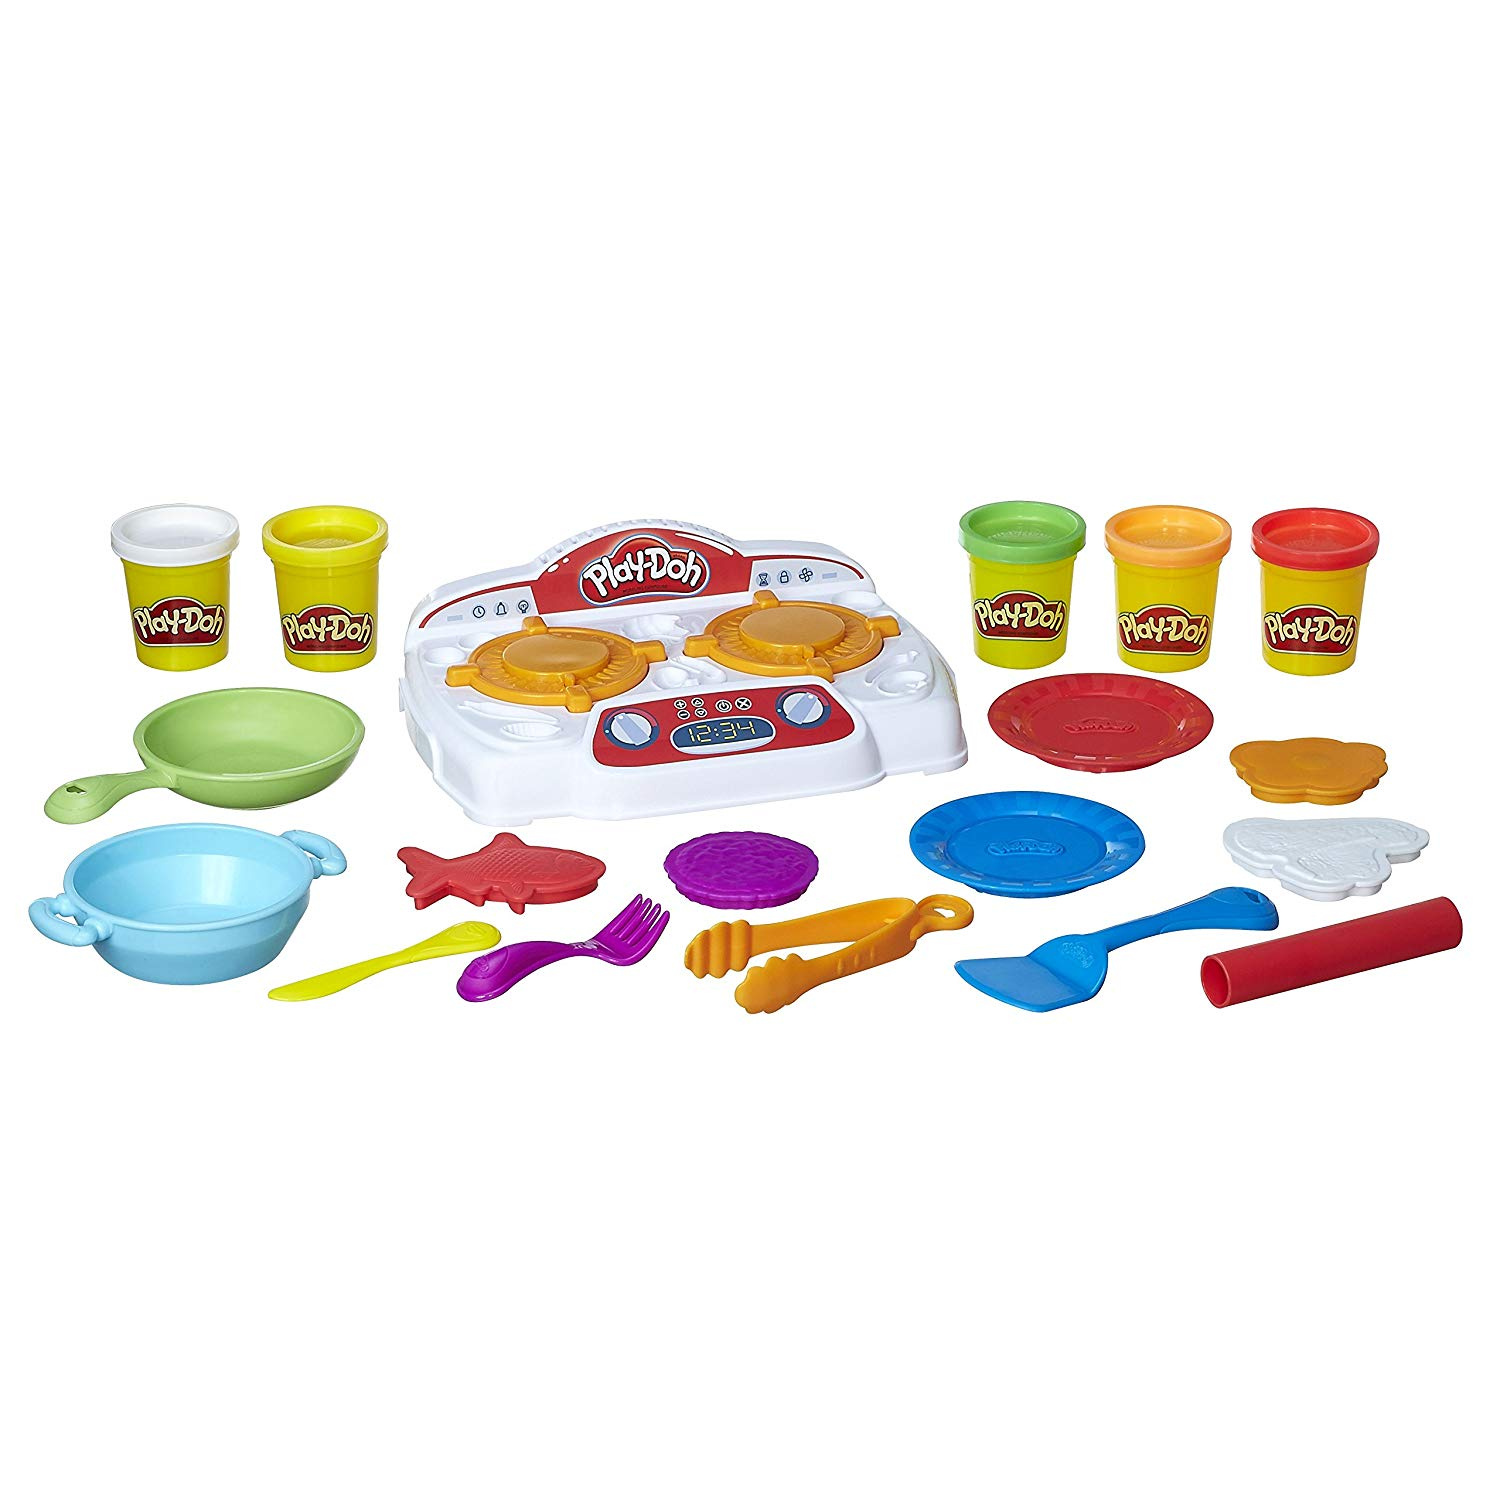 Play Doh Knet Küche Play Doh Kitchen Creations Sizzlin Stovetop Toys